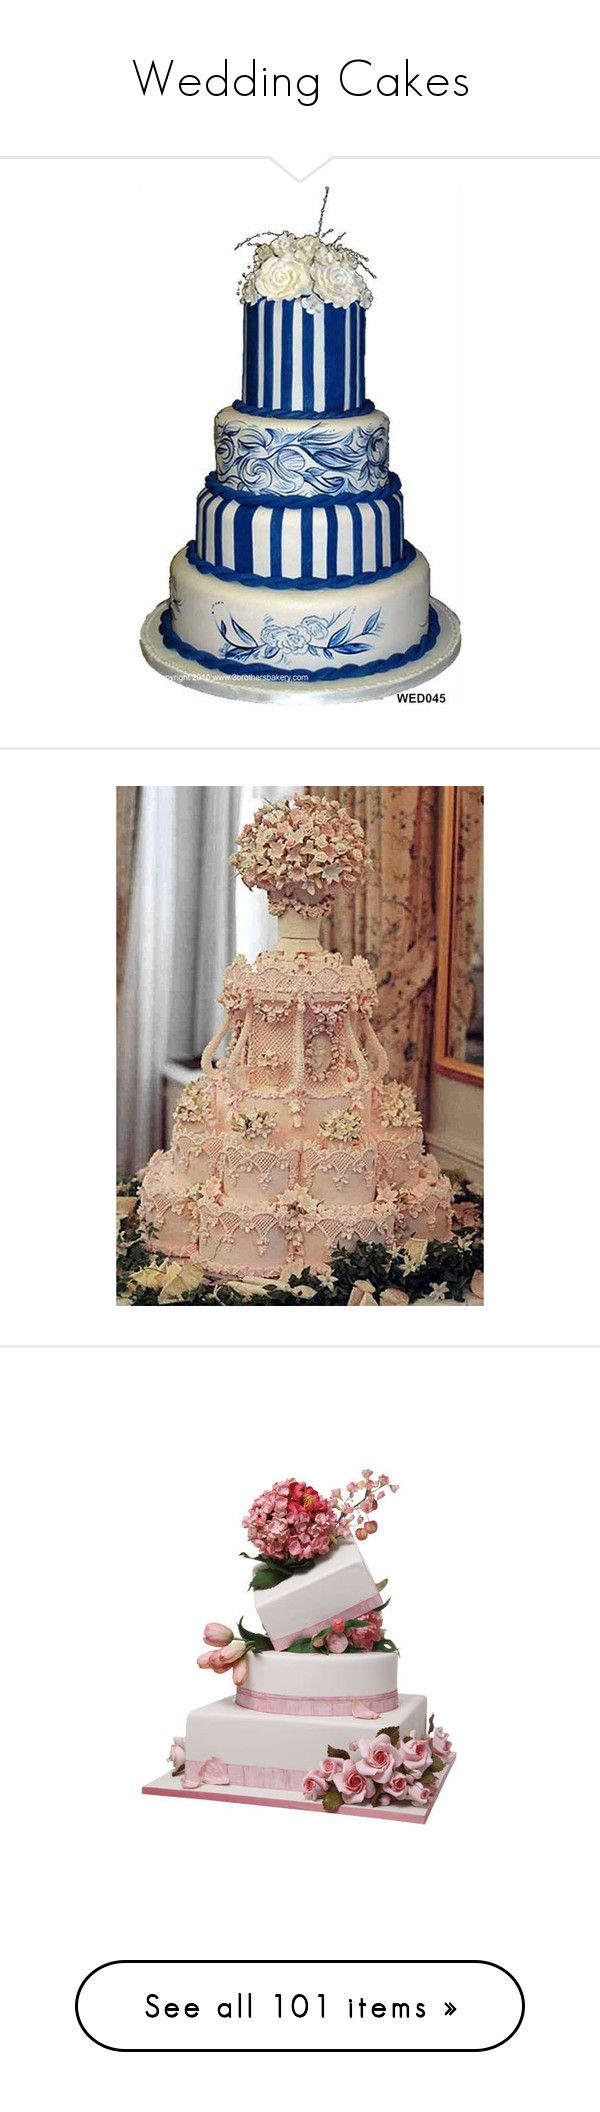 """""""Wedding Cakes"""" by jewelsinthecrown ❤ liked on Polyvore featuring food, cakes, wedding, wedding cake, weddings, cake, fillers, wedding cakes, backgrounds and food and drink"""